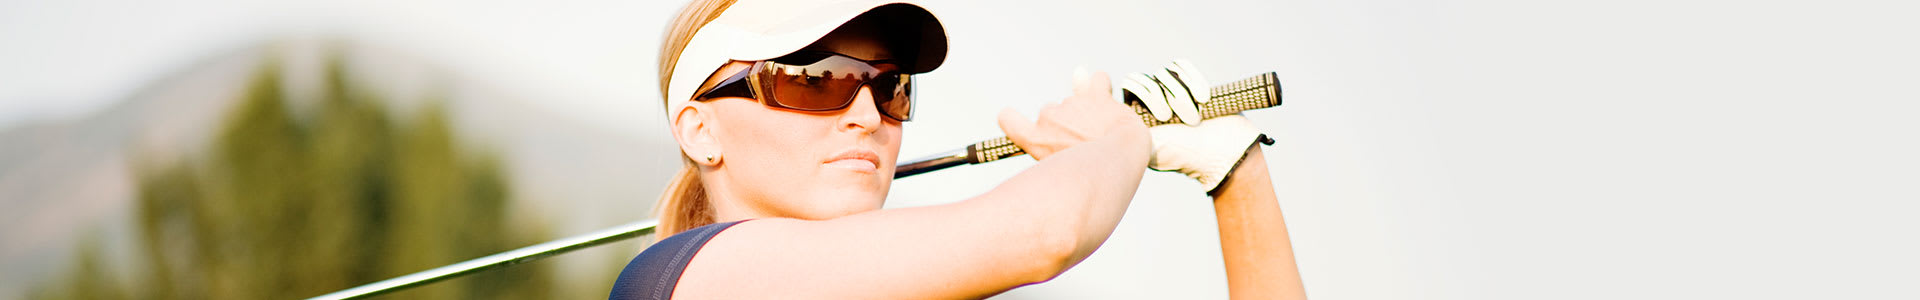 Woman Golfing with Sunglasses